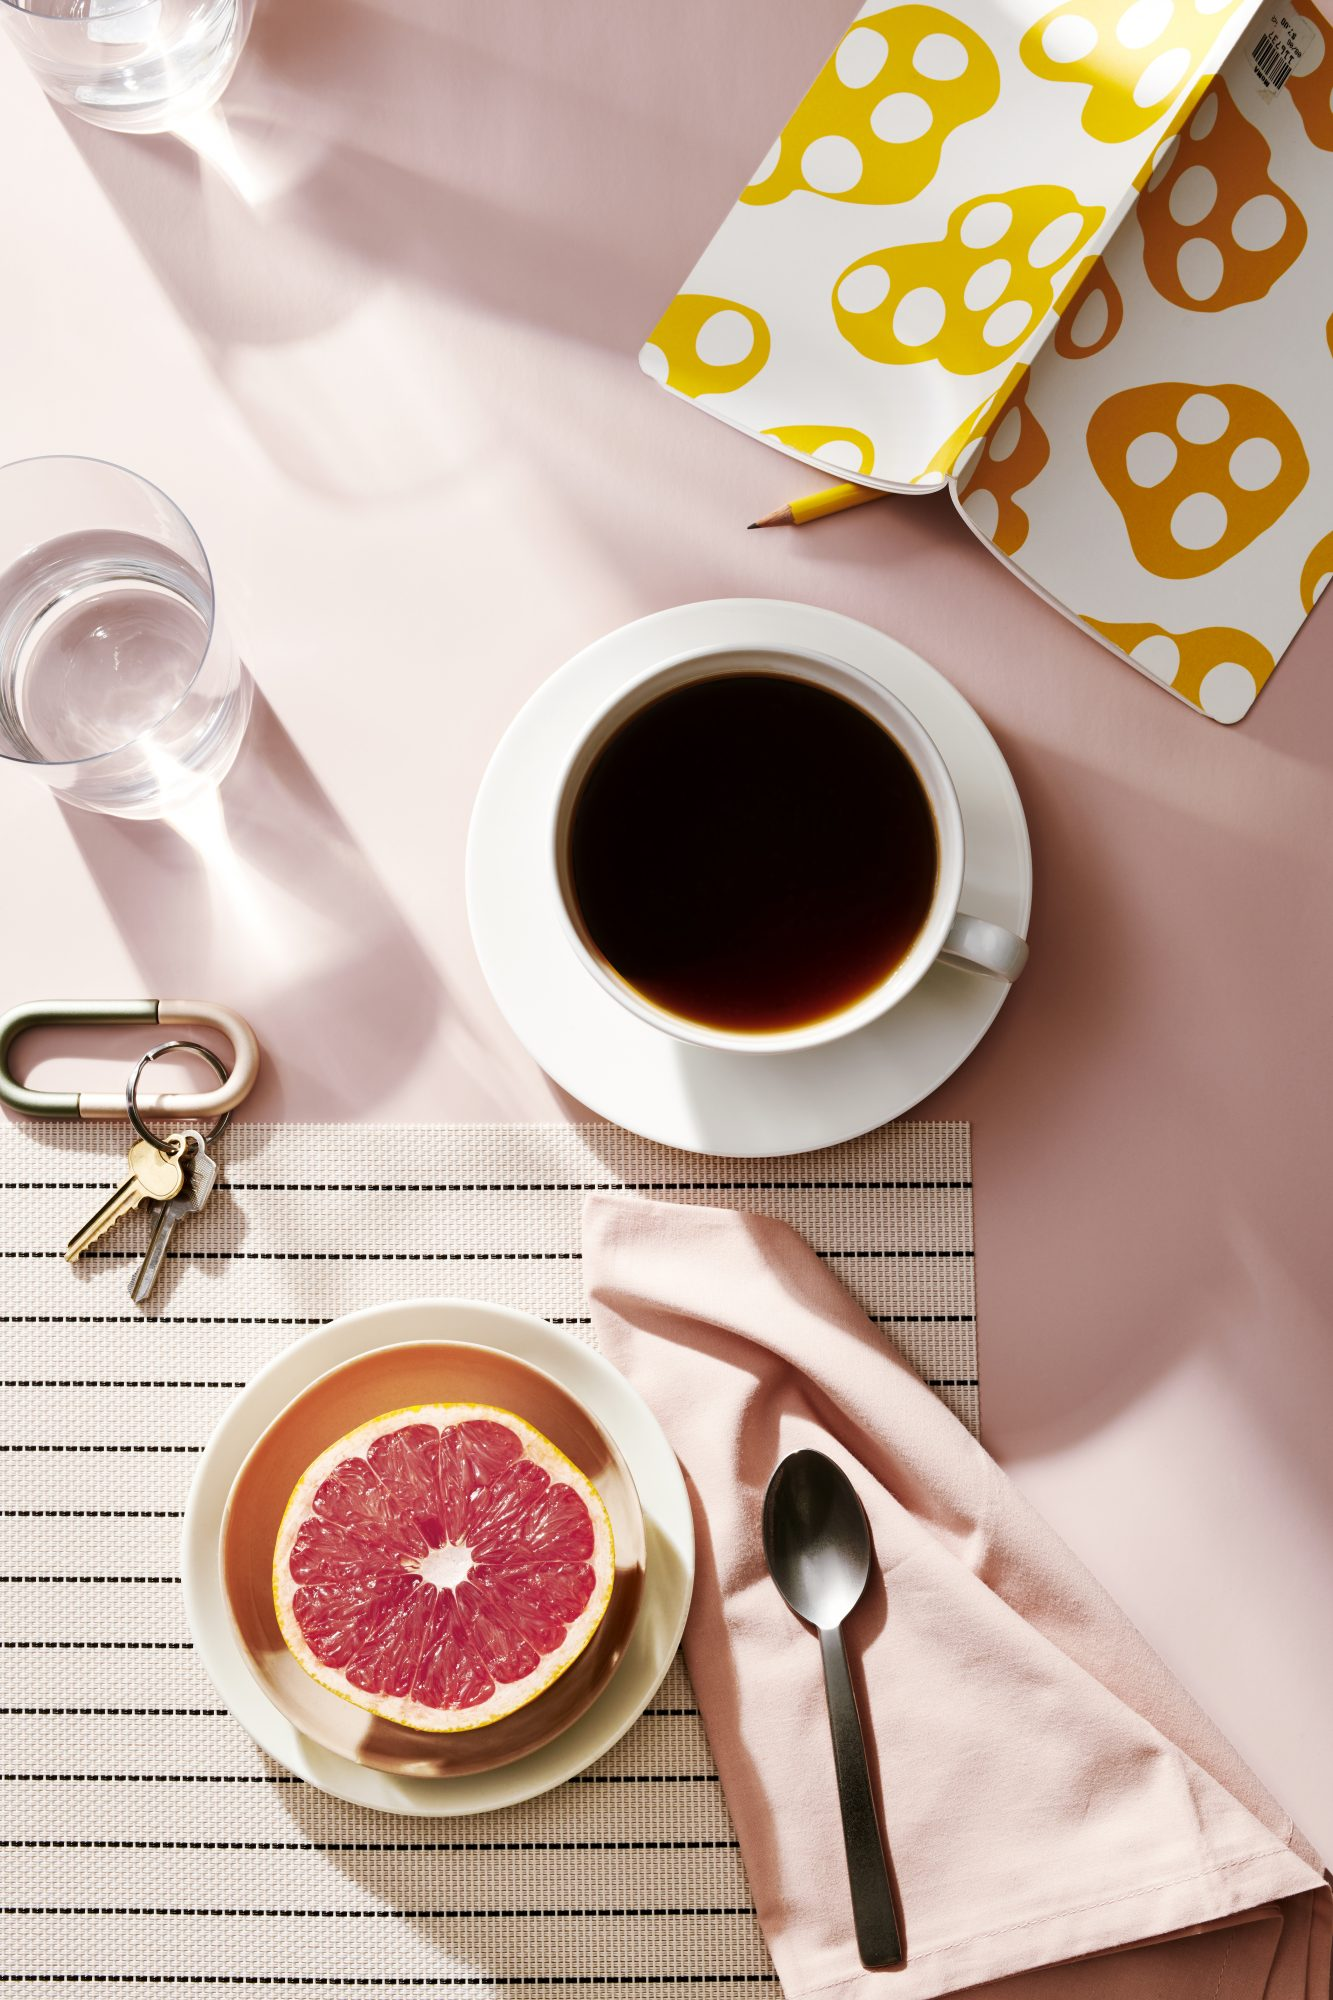 Rise and Shine morning person sleep coffee grapefruit still life health rest relax stress woman women busy